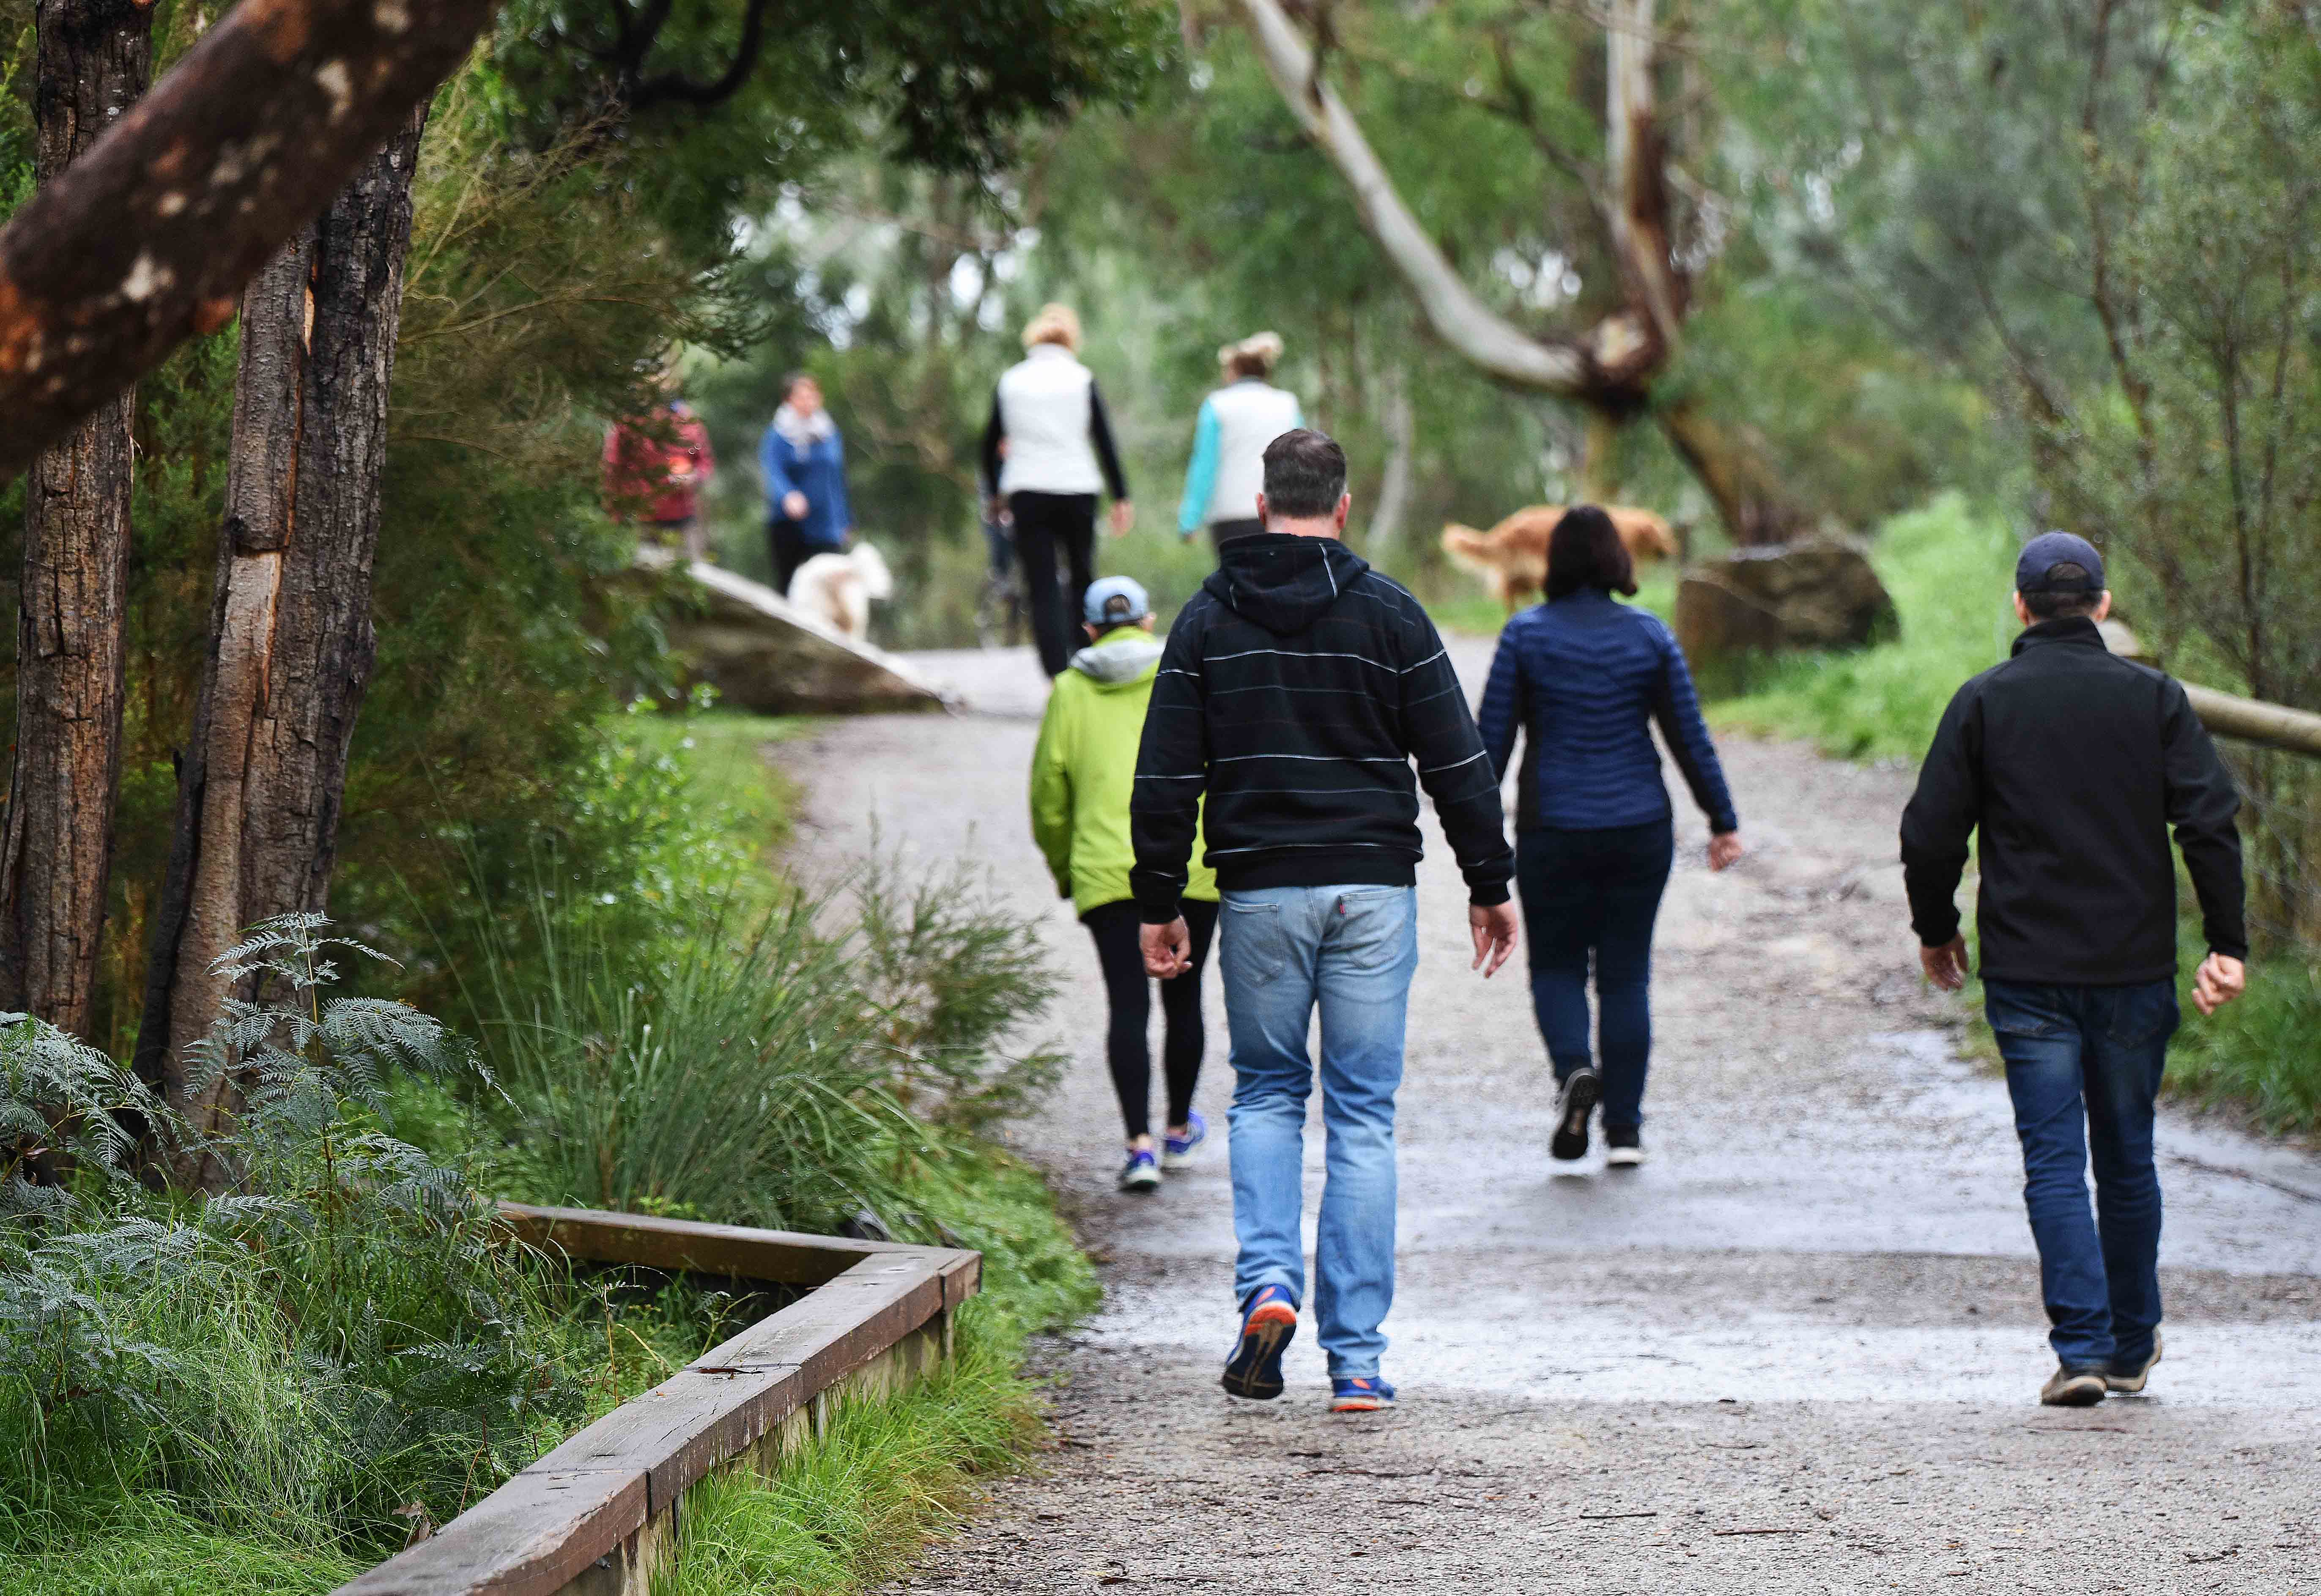 Photograph of people walking along a track in Warrandyte amongst trees and other vegetation